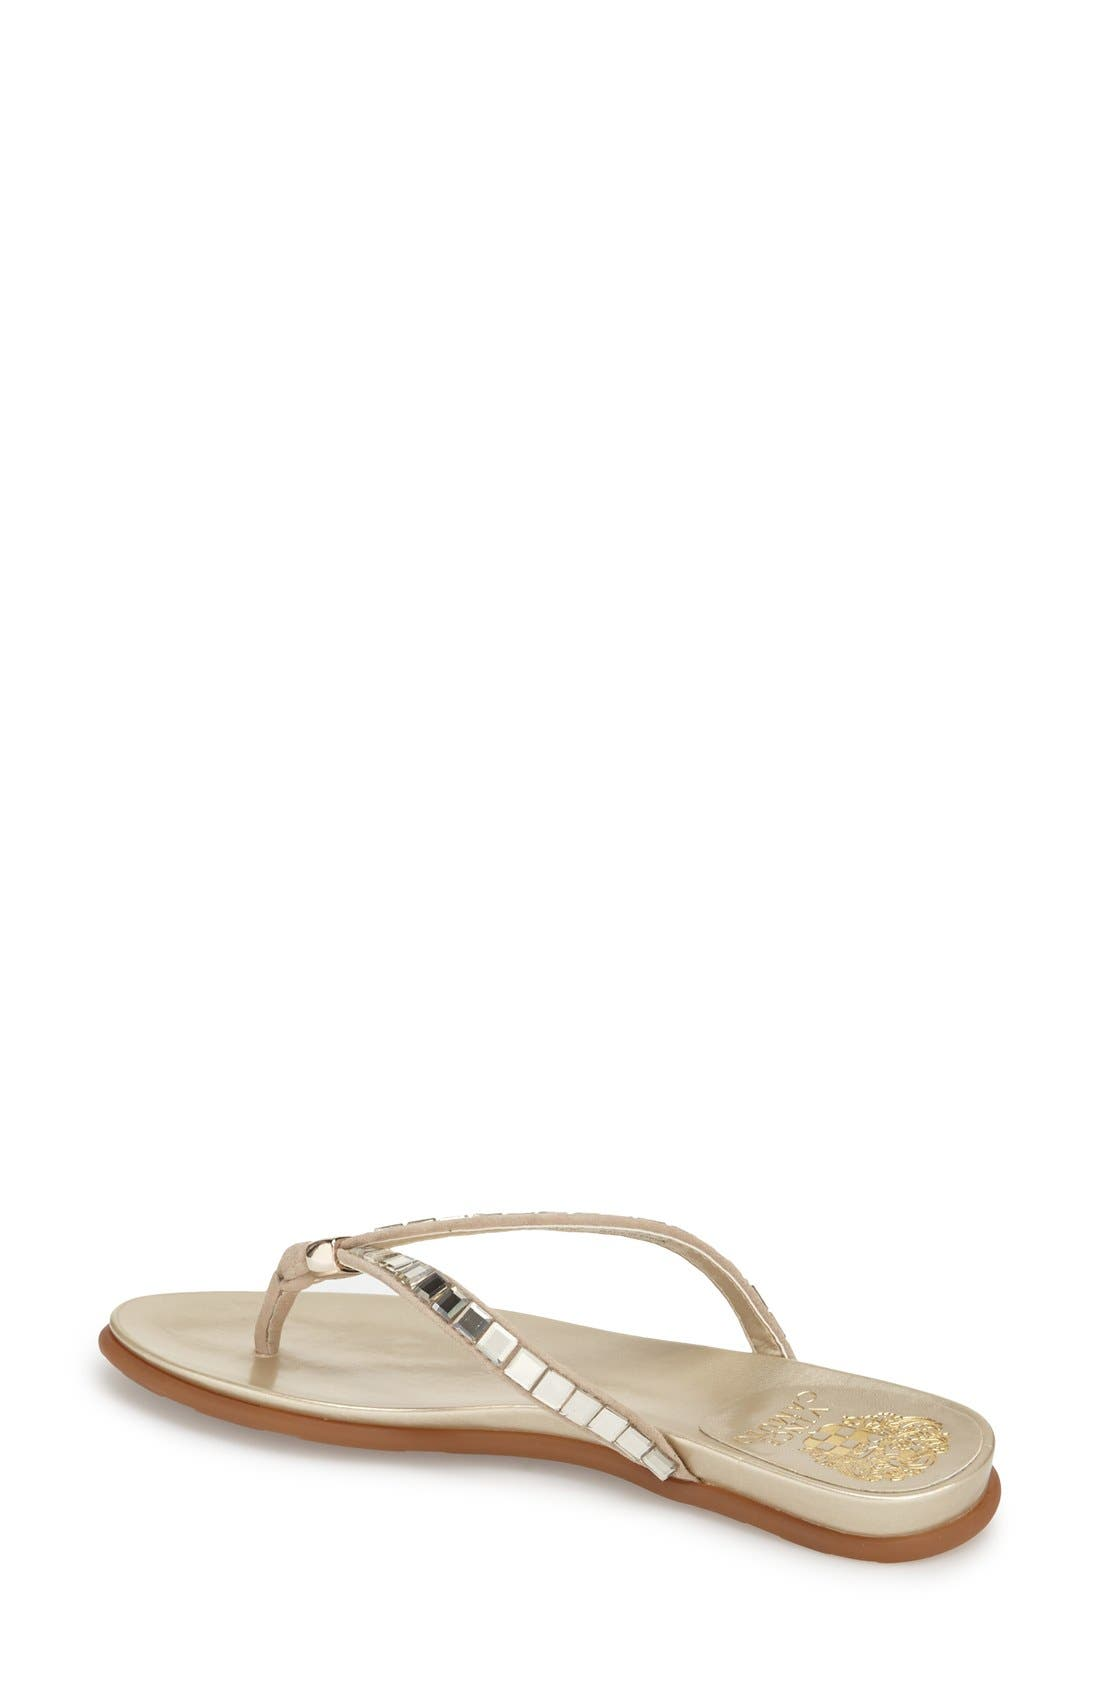 Alternate Image 2  - Vince Camuto 'Ellita' Flat Sandal (Women)